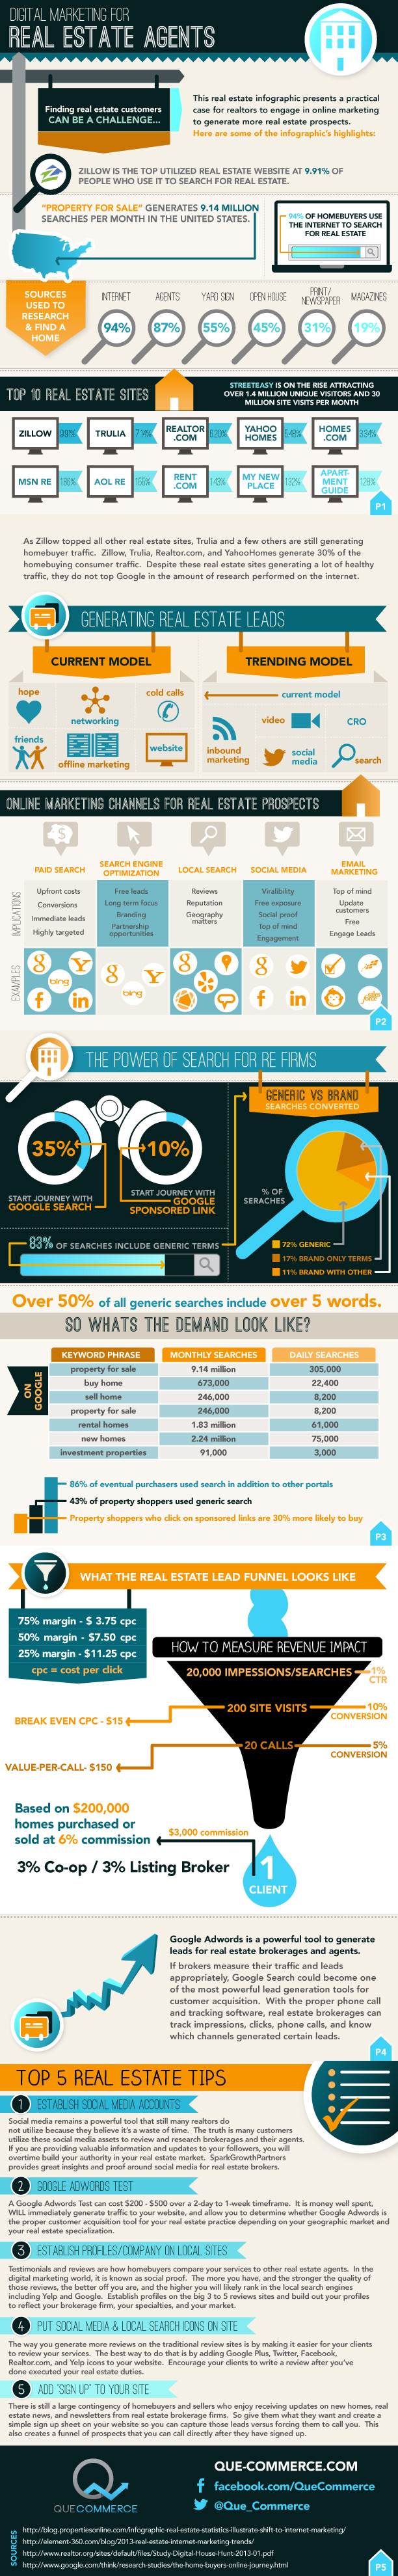 Real Estate Marketing Infographic